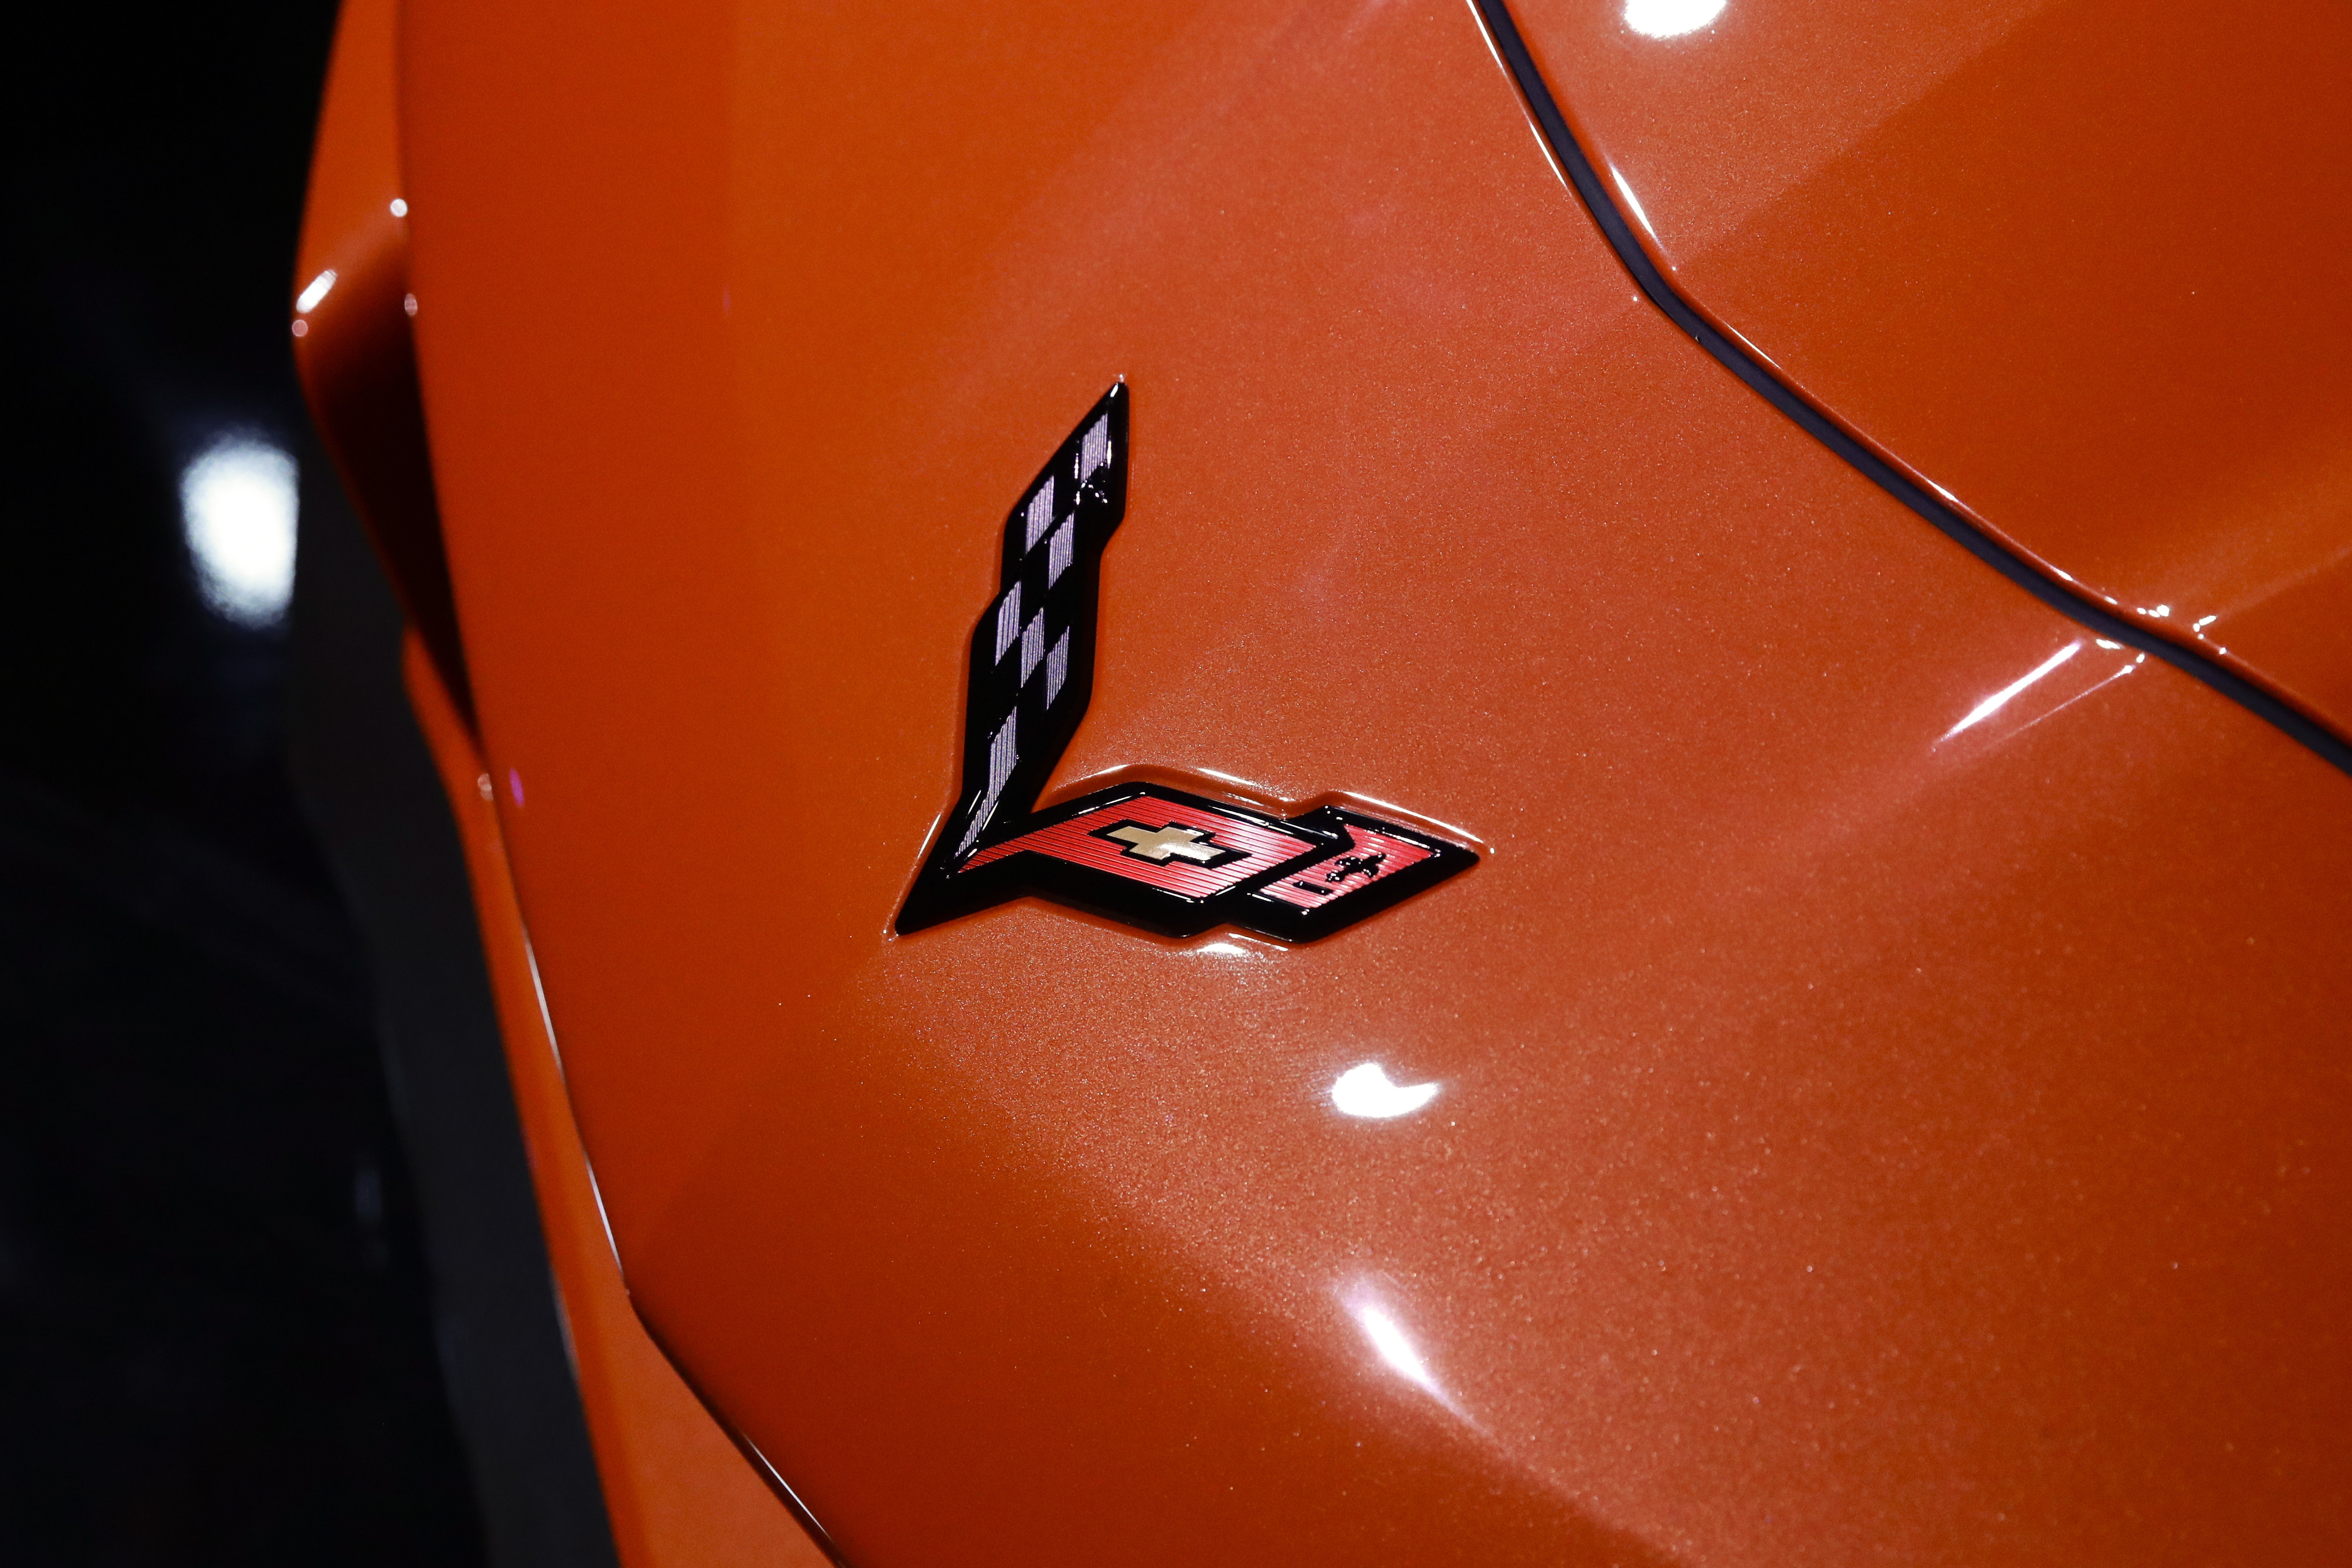 The 2019 Chevrolet Corvette ZR1 convertible hood logo is shown during the AutoMobility LA auto show Tuesday, Nov. 28, 2017, in Los Angeles. (AP Photo/Chris Carlson)